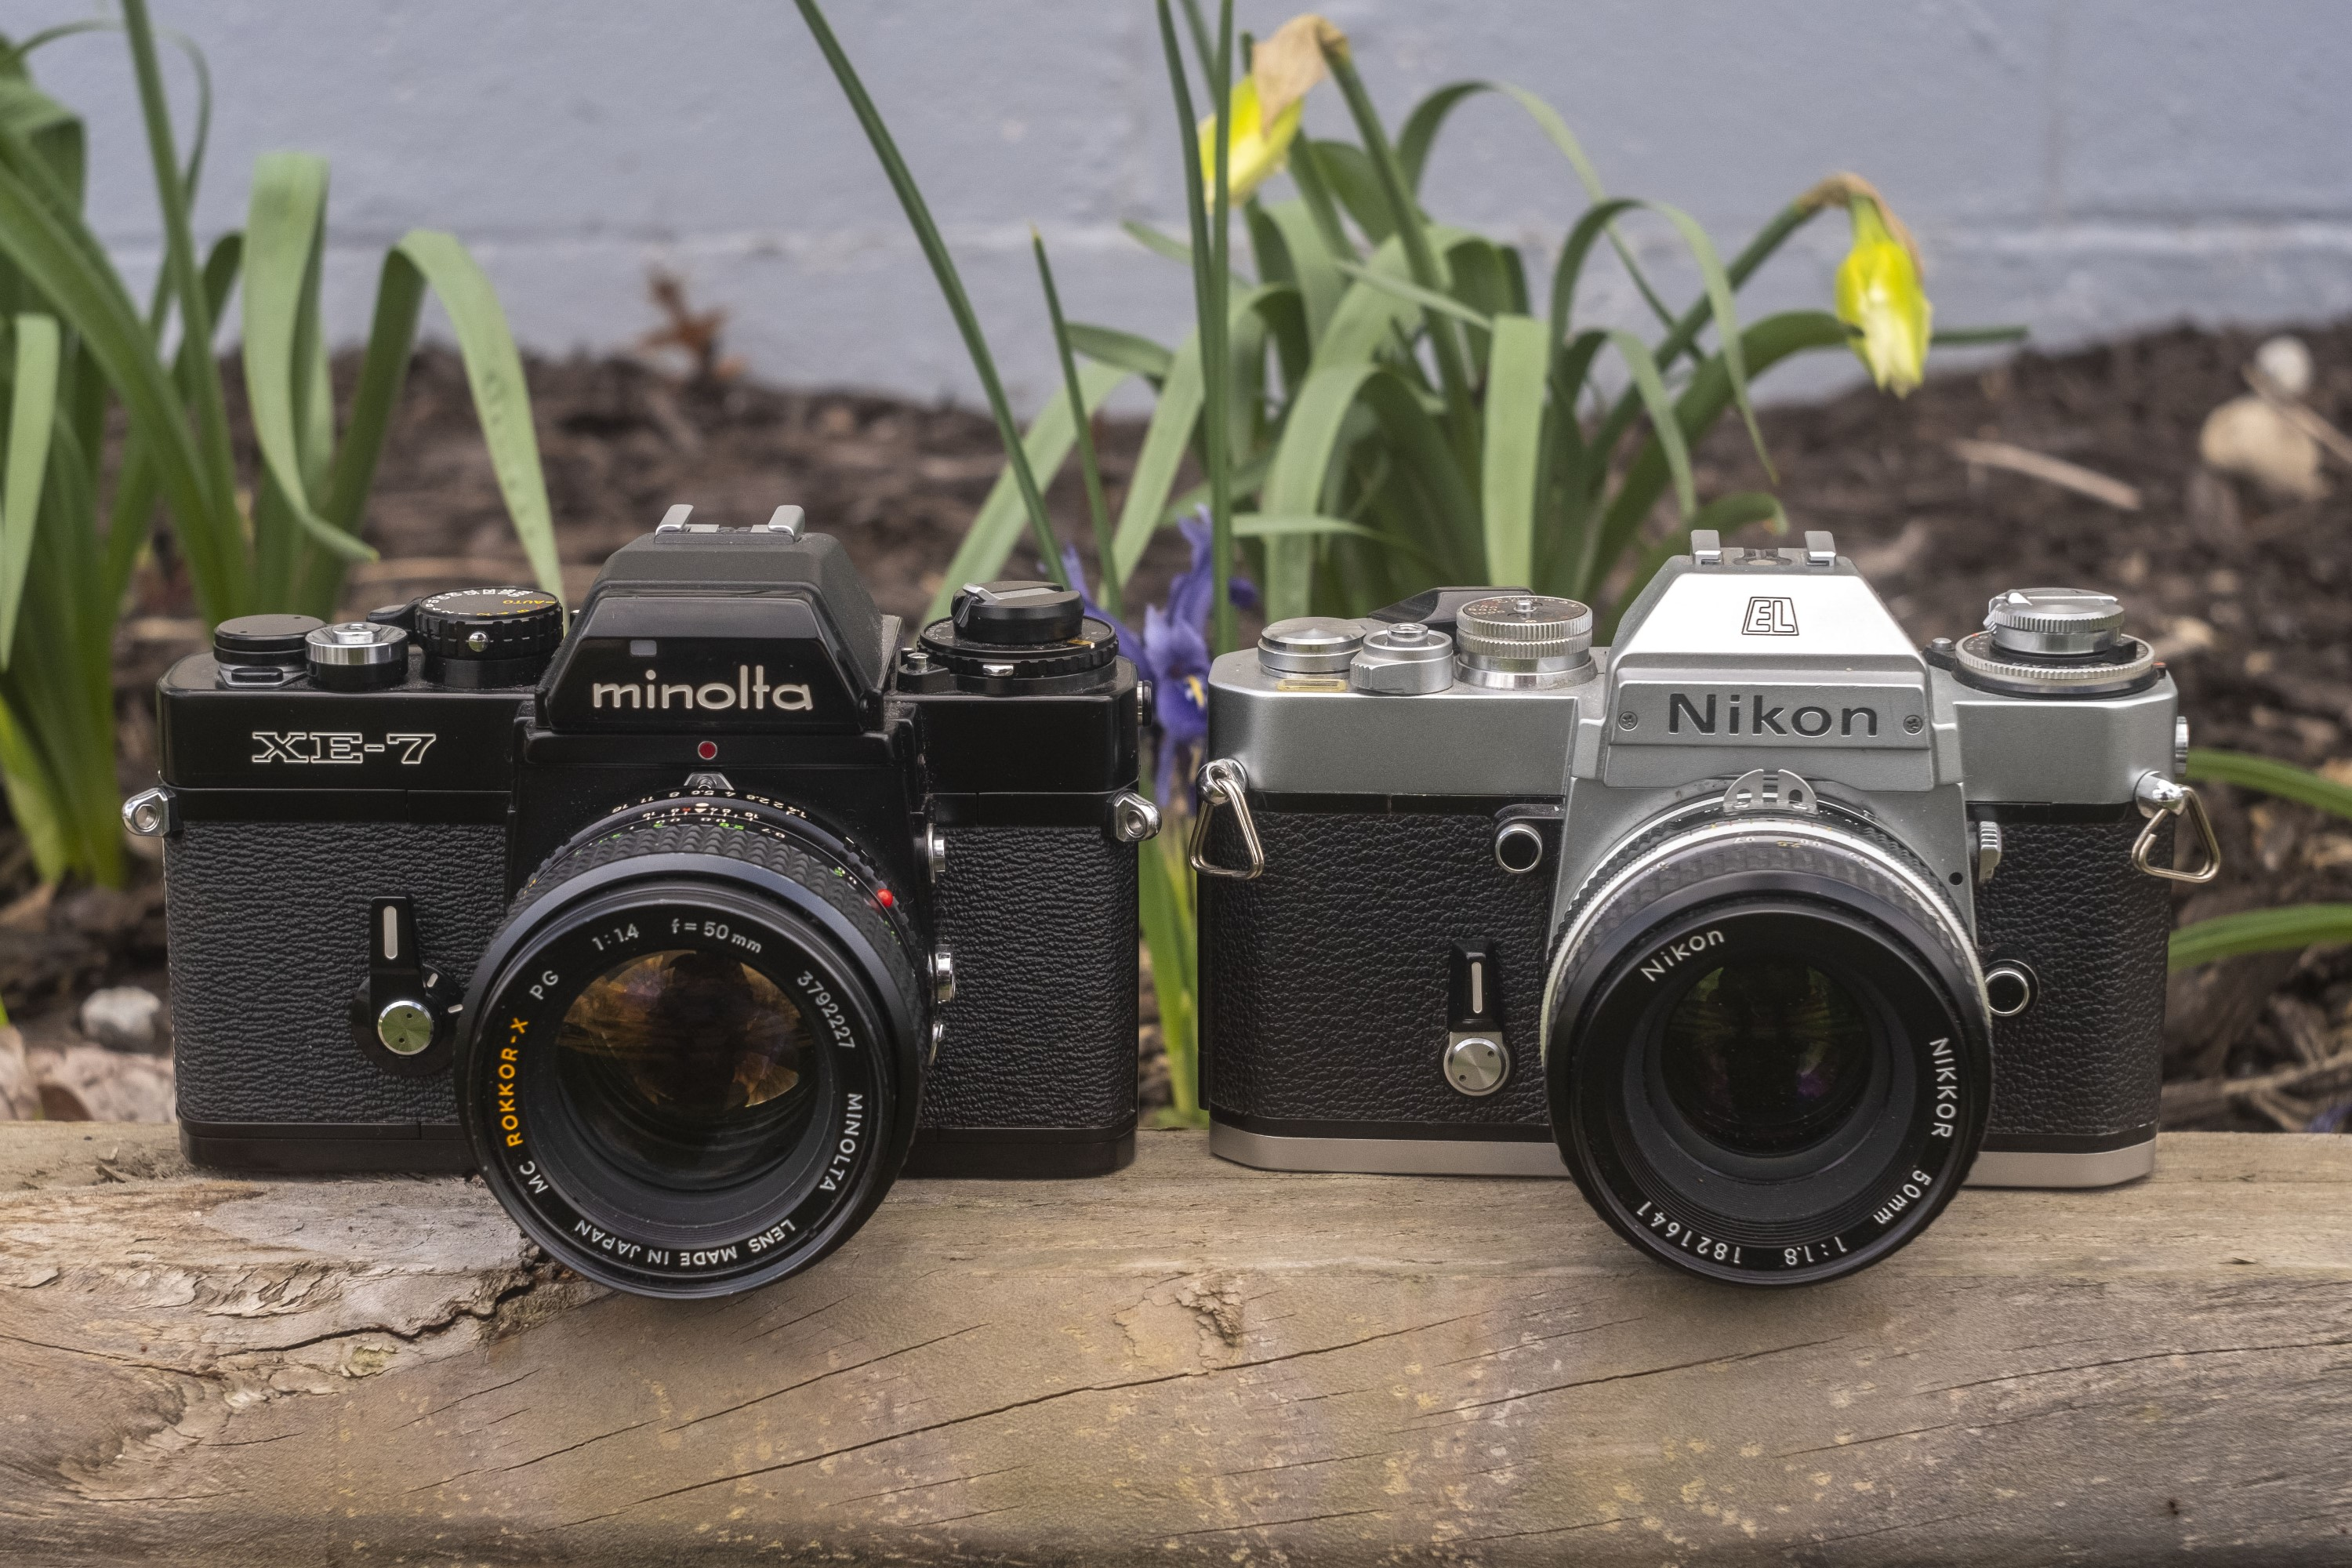 My Favorite SLR Showdown: Nikon EL2 vs Minolta XE-7